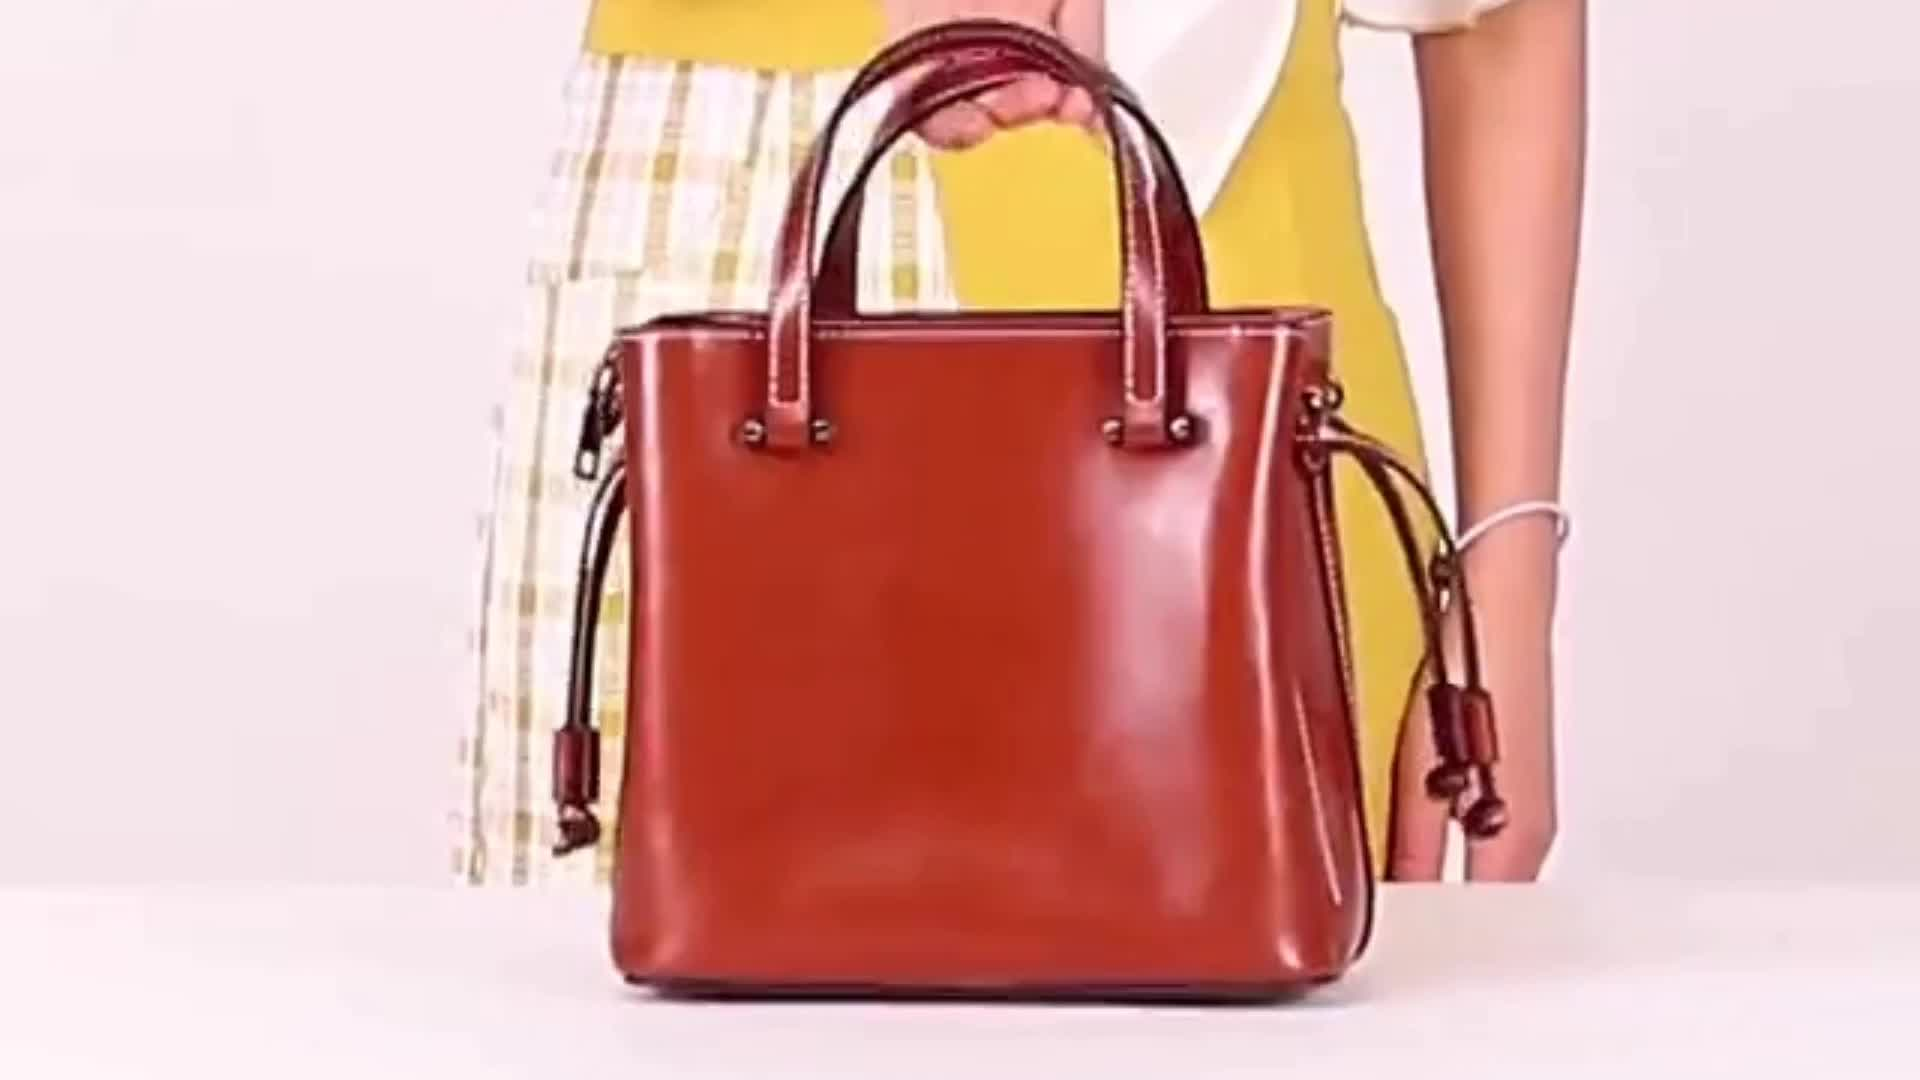 JUNYUAN 2019 New Tote Fashion Handbag Genuine Leather Bags Women Handbags For Lady